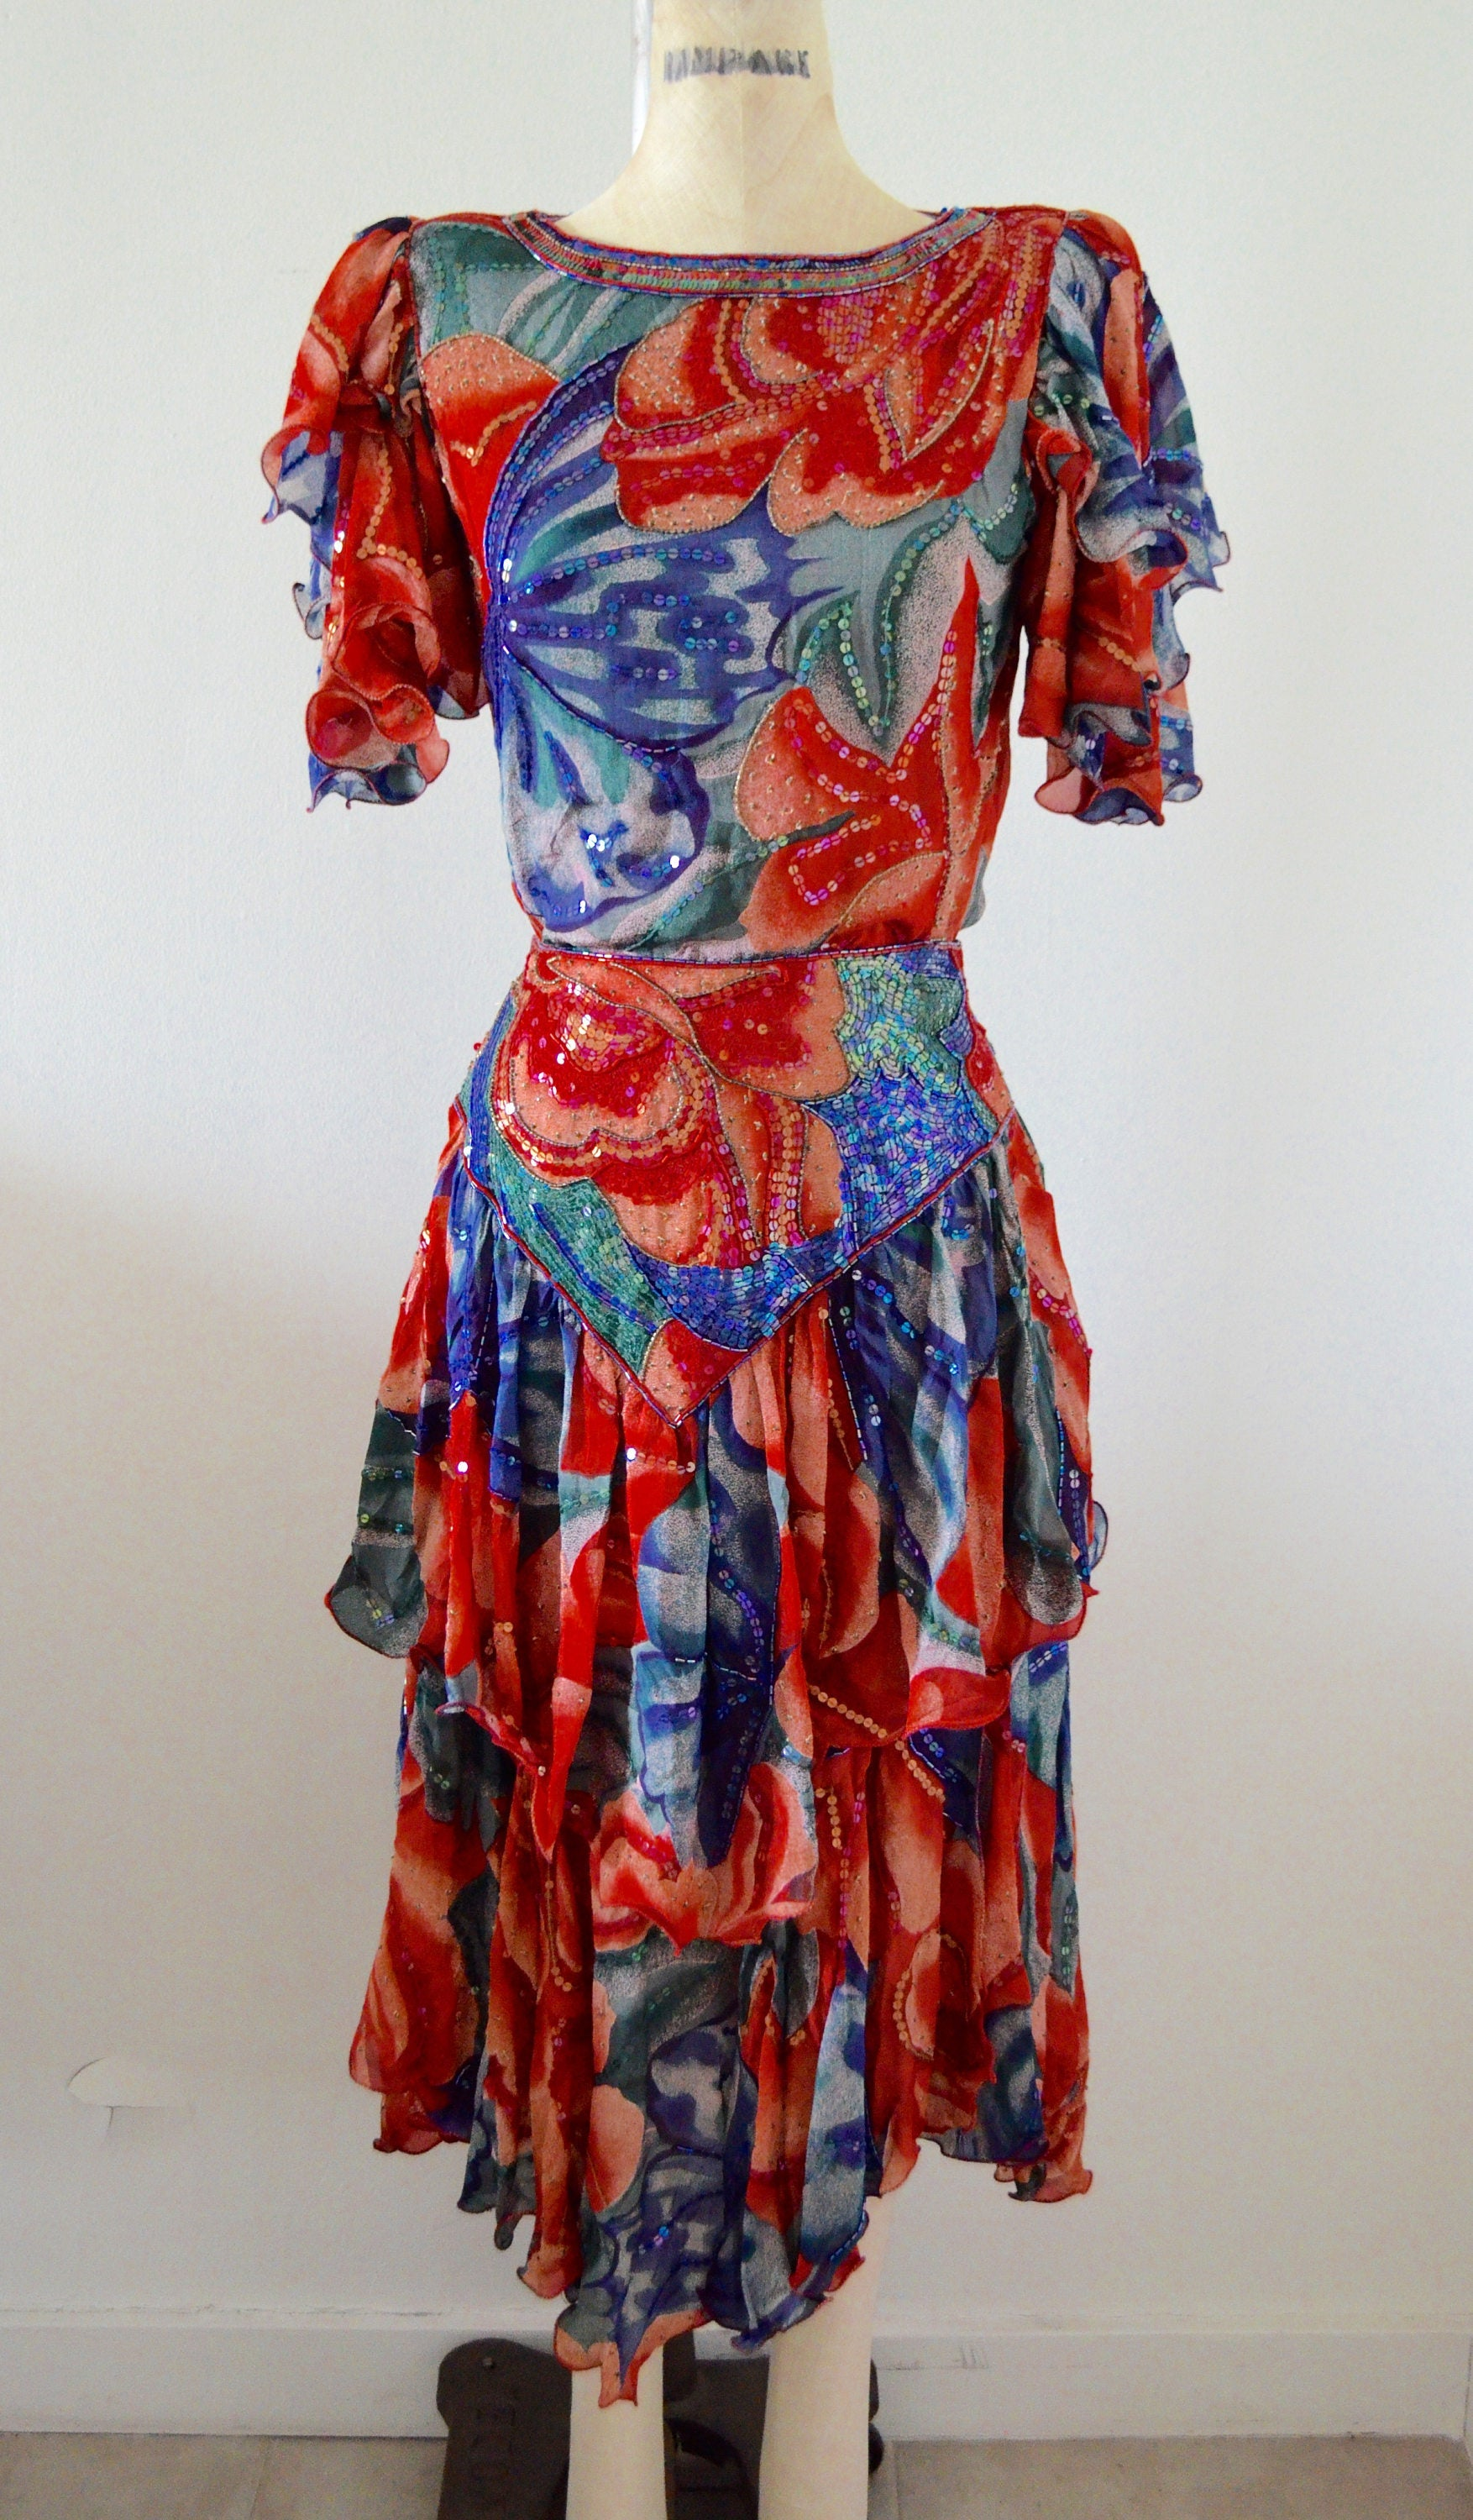 Tropical Garden Silk Set Skirt Pattern Fully Sequined Top Skirt Red, Blue And White Floral Sequin